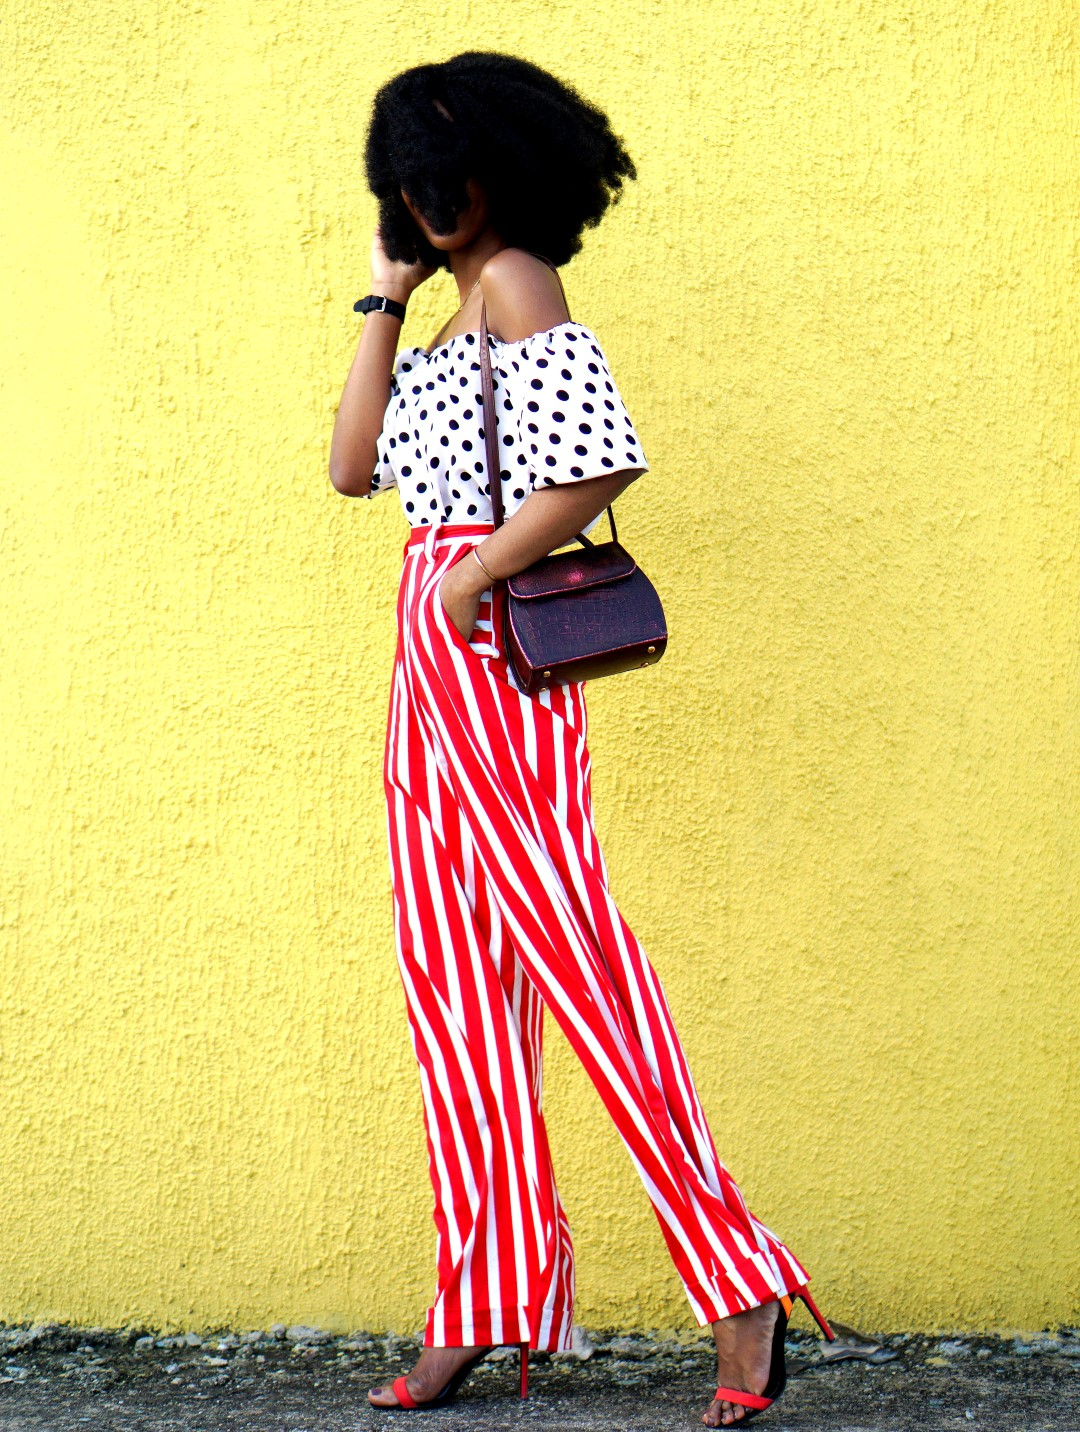 Mixed prints fashion trend : Nigerian fashion and lifestyle blogger Cassie Daves In a polka dot off shoulder top and striped pants